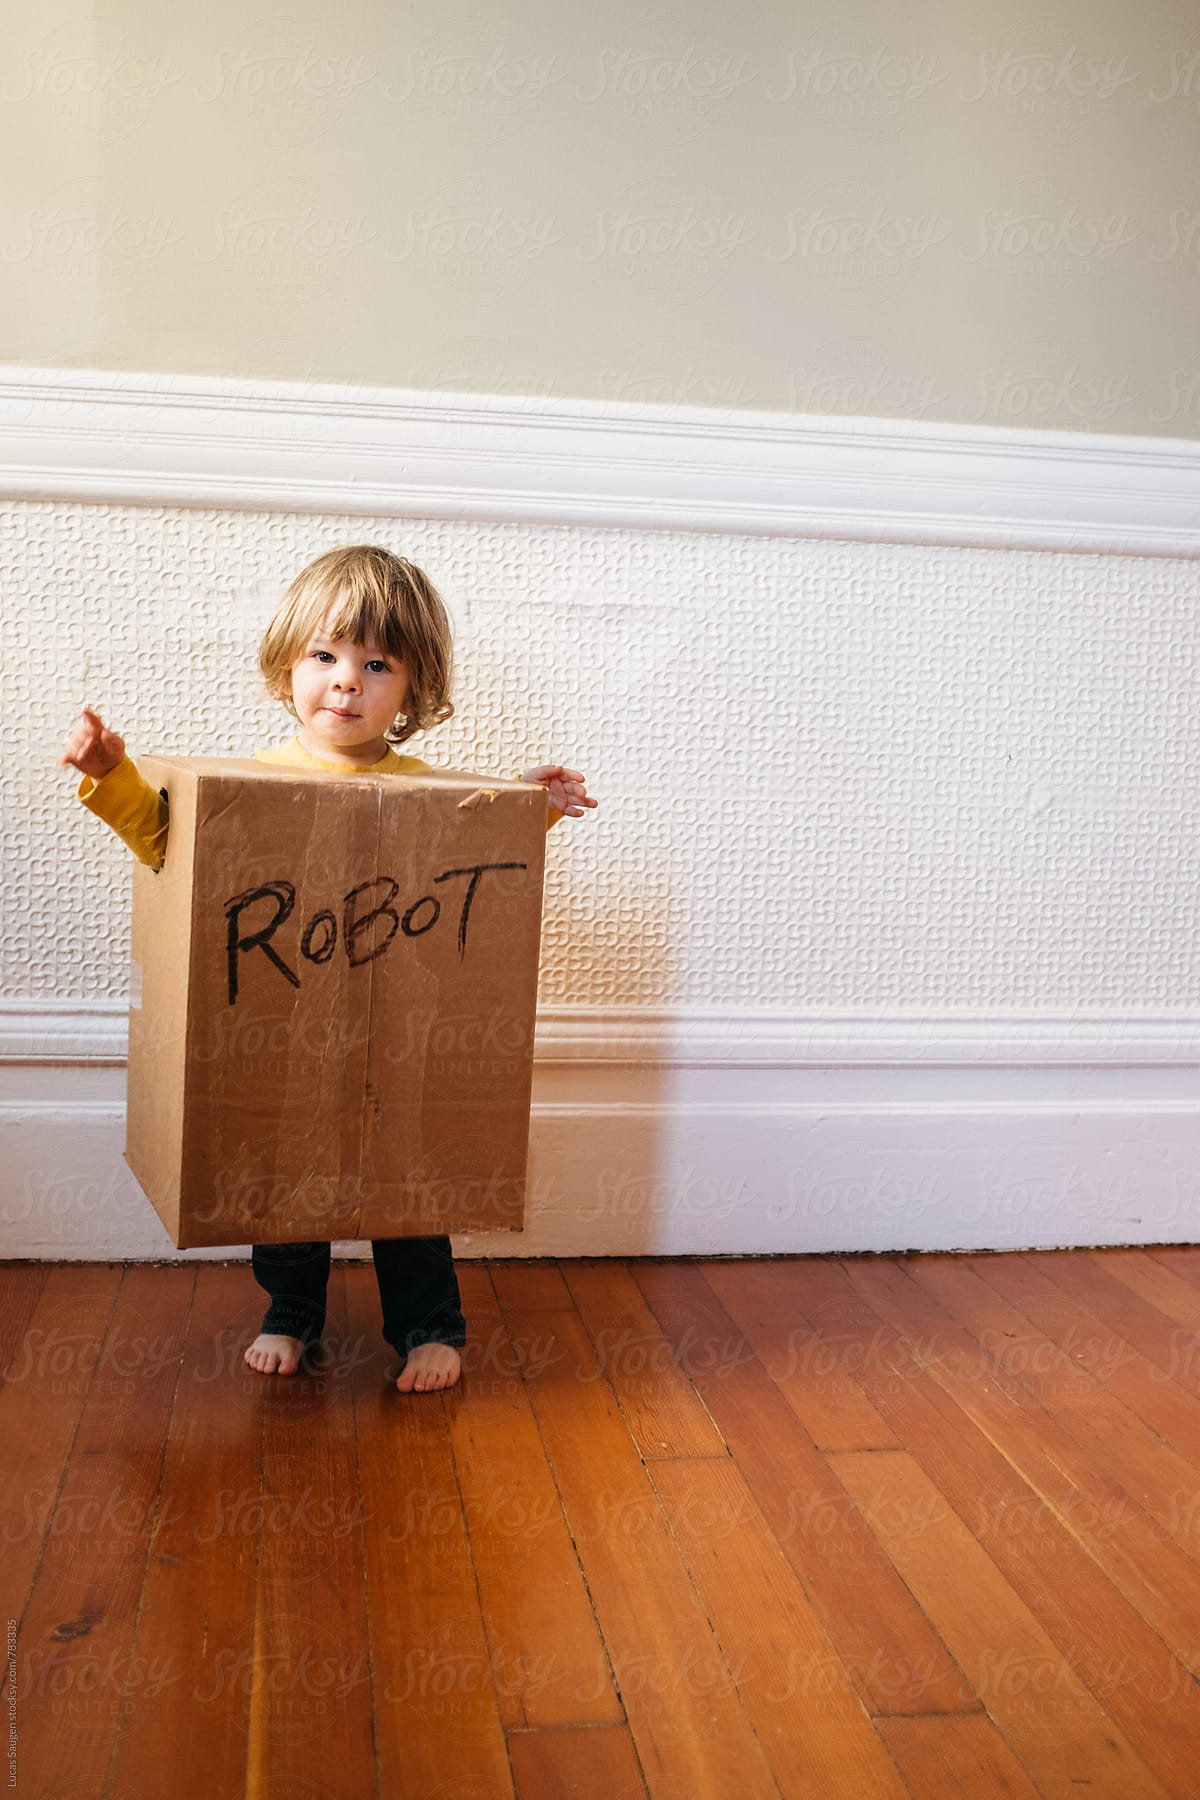 Summer Activities To Do With The Grandkids - A Child In A Cardboard Box Robot Costume